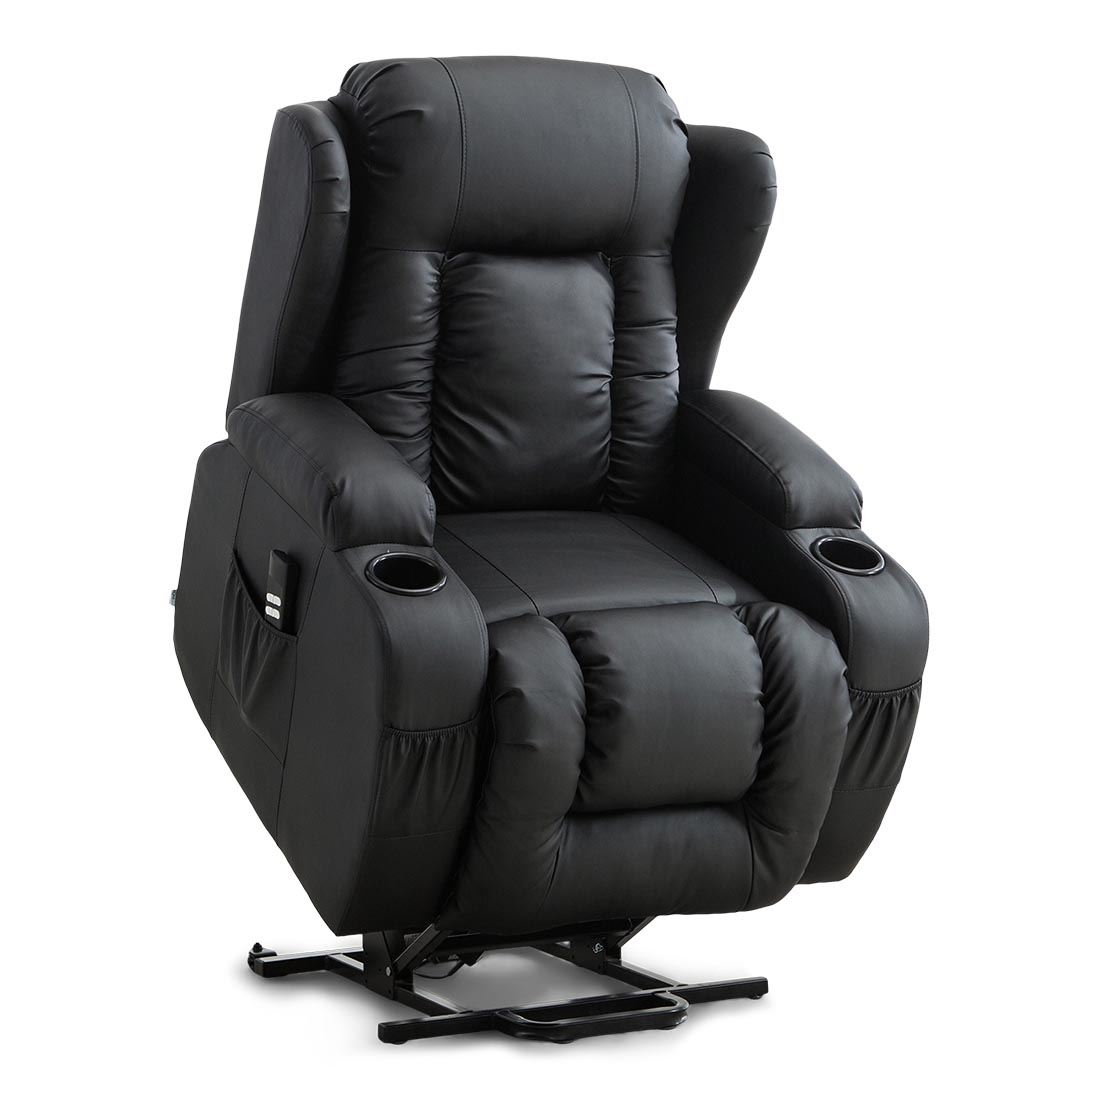 CAESAR-DUAL-MOTOR-RISER-RECLINER-LEATHER-MOBILITY-ARMCHAIR-MASSAGE-HEATED-CHAIR thumbnail 3